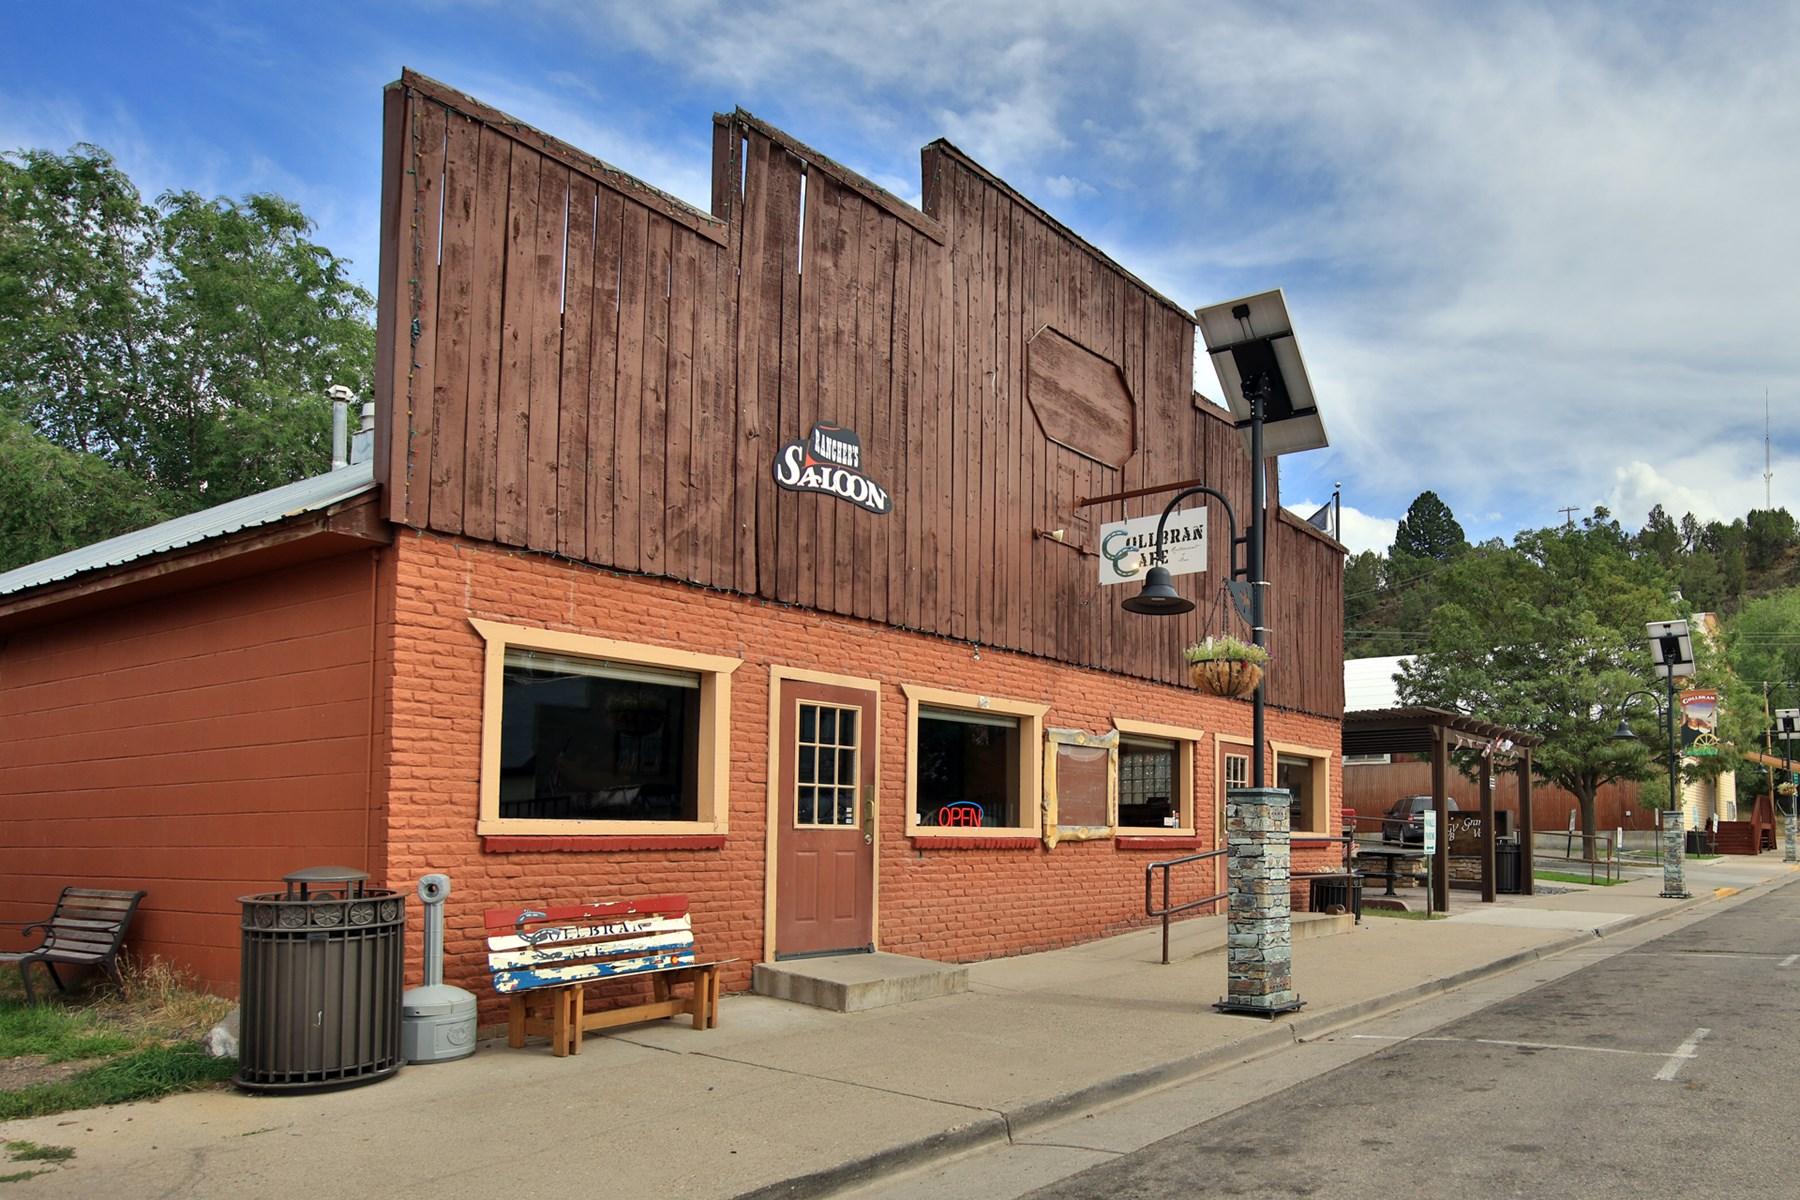 Restaurant and Bar Investment Opportunity For Sale in CO